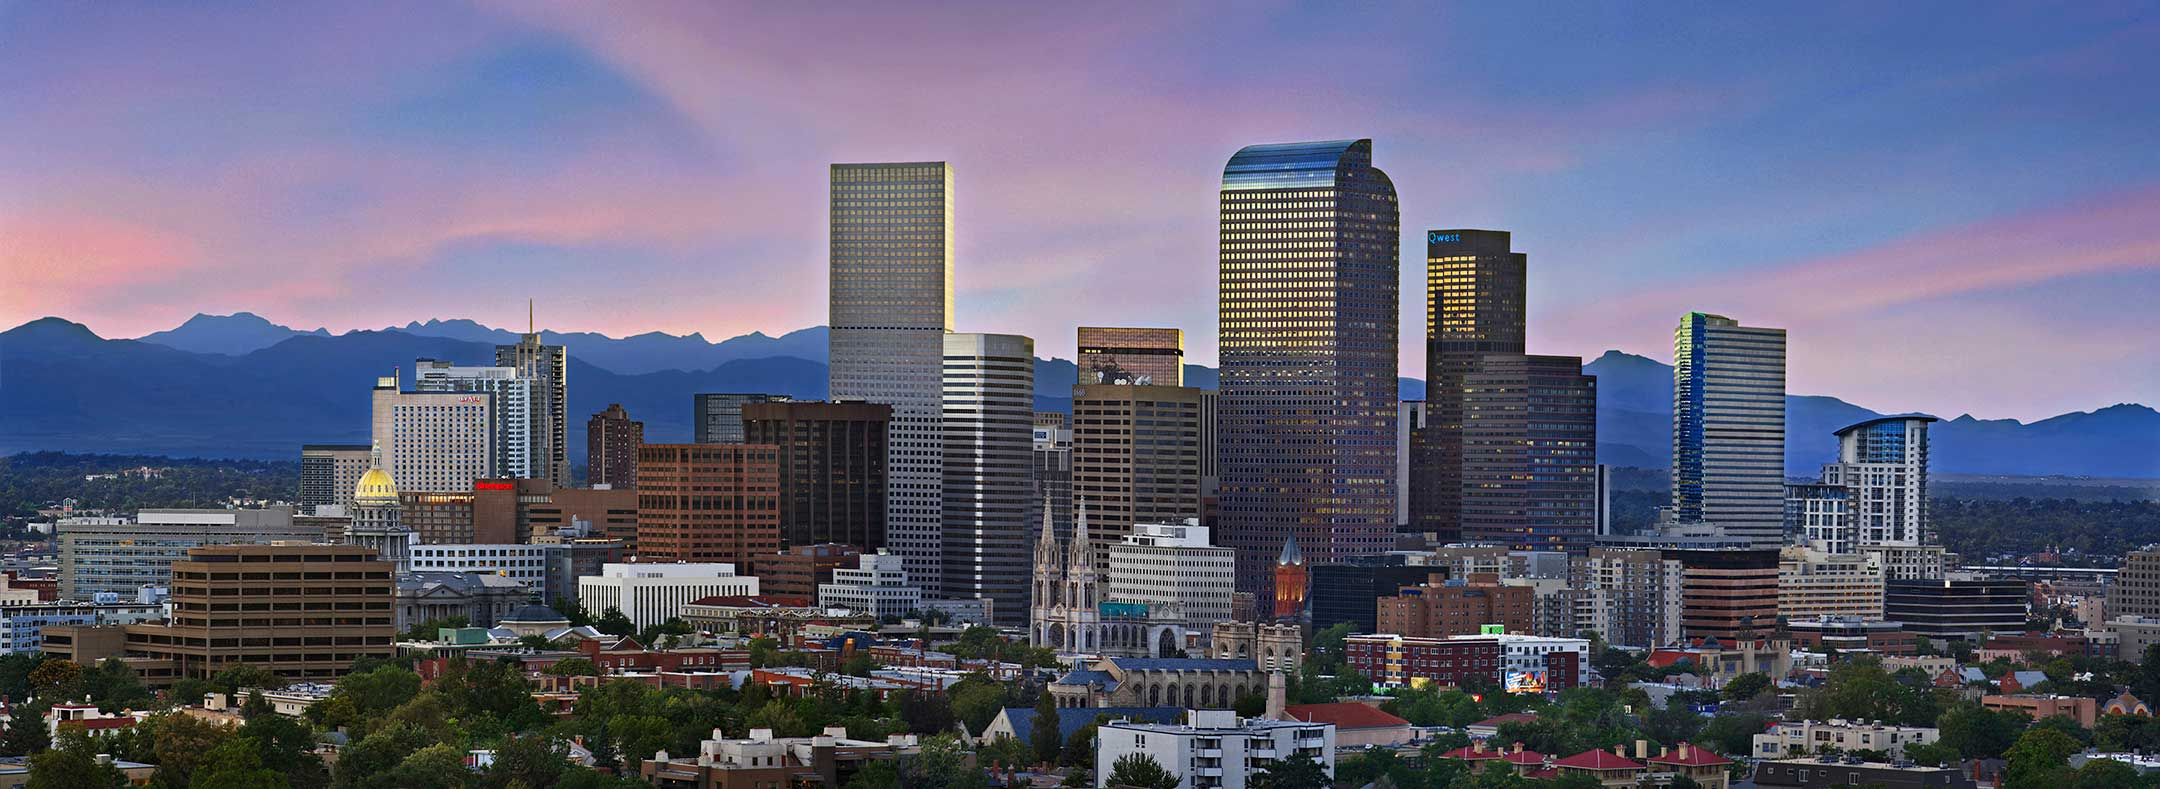 Denver skyline background img 2